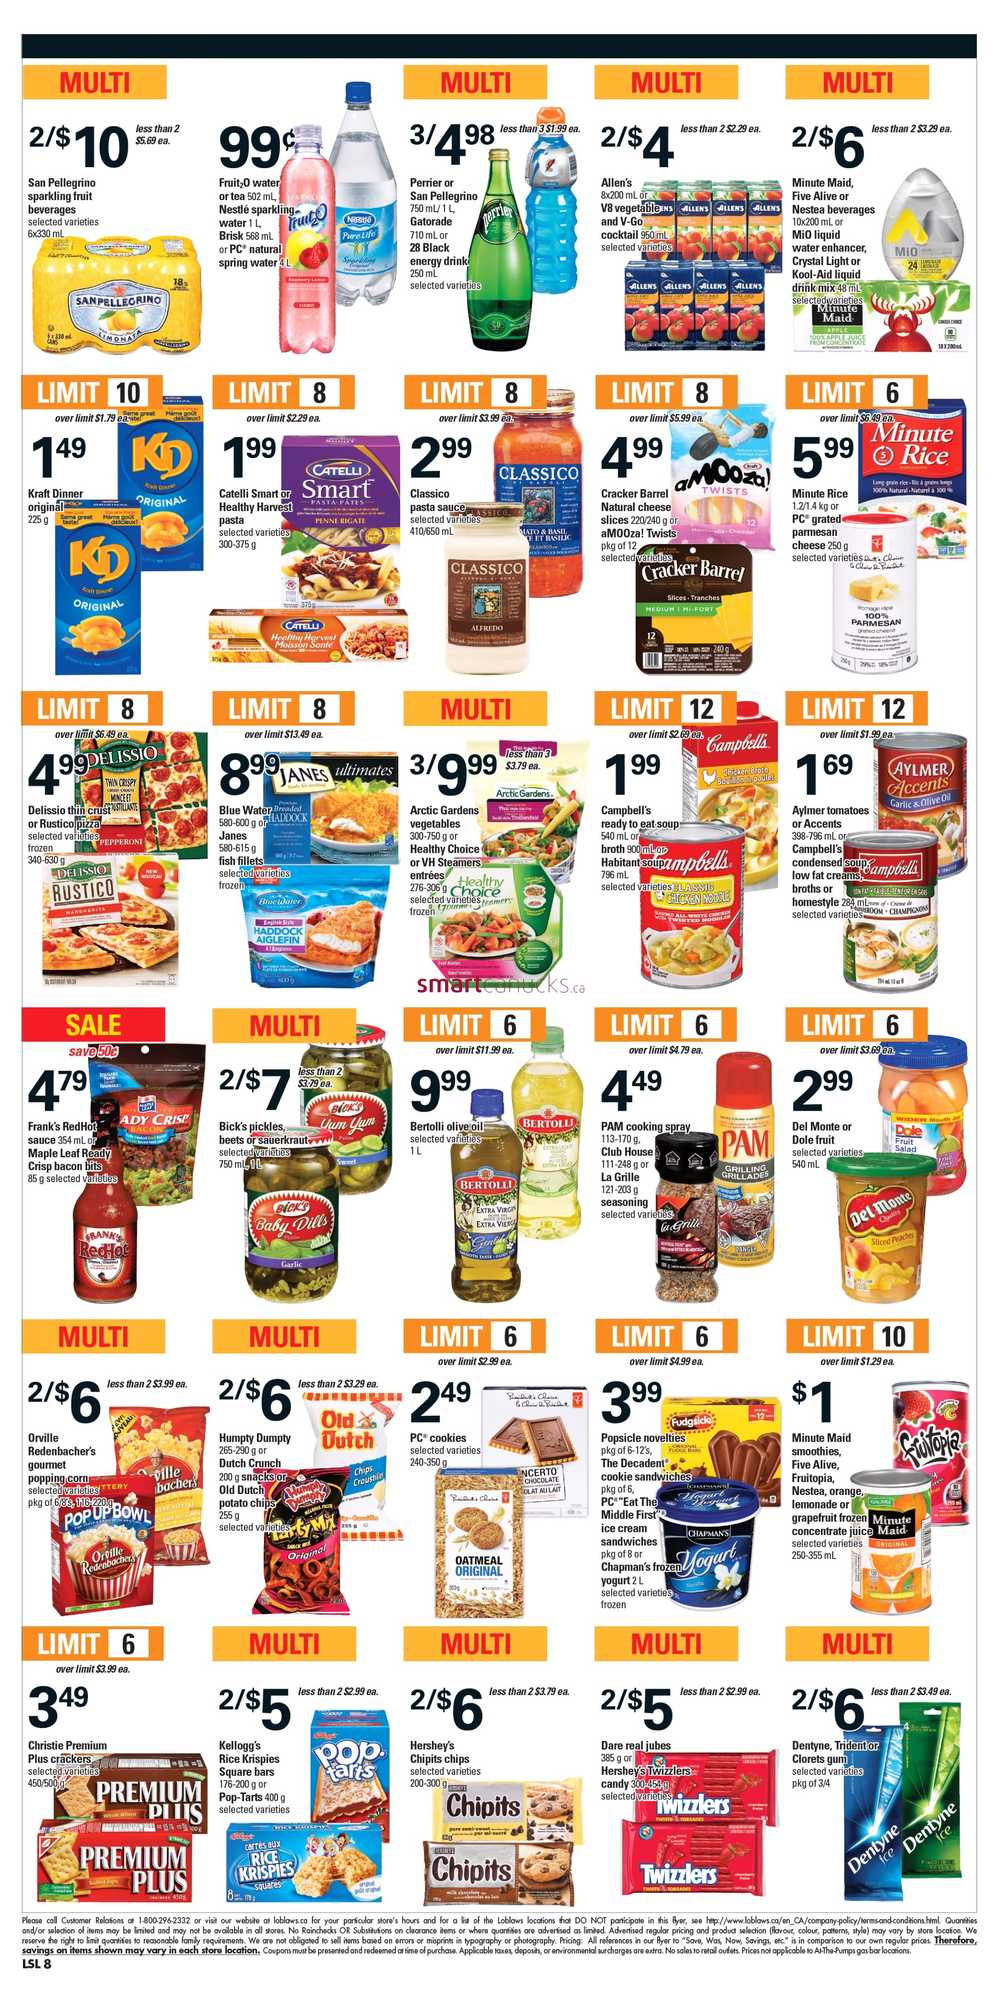 graphic about Grocerysmarts.com Printable Grocery Planner titled Discount codes ottawa grocery shops : Coupon very good for a single no cost